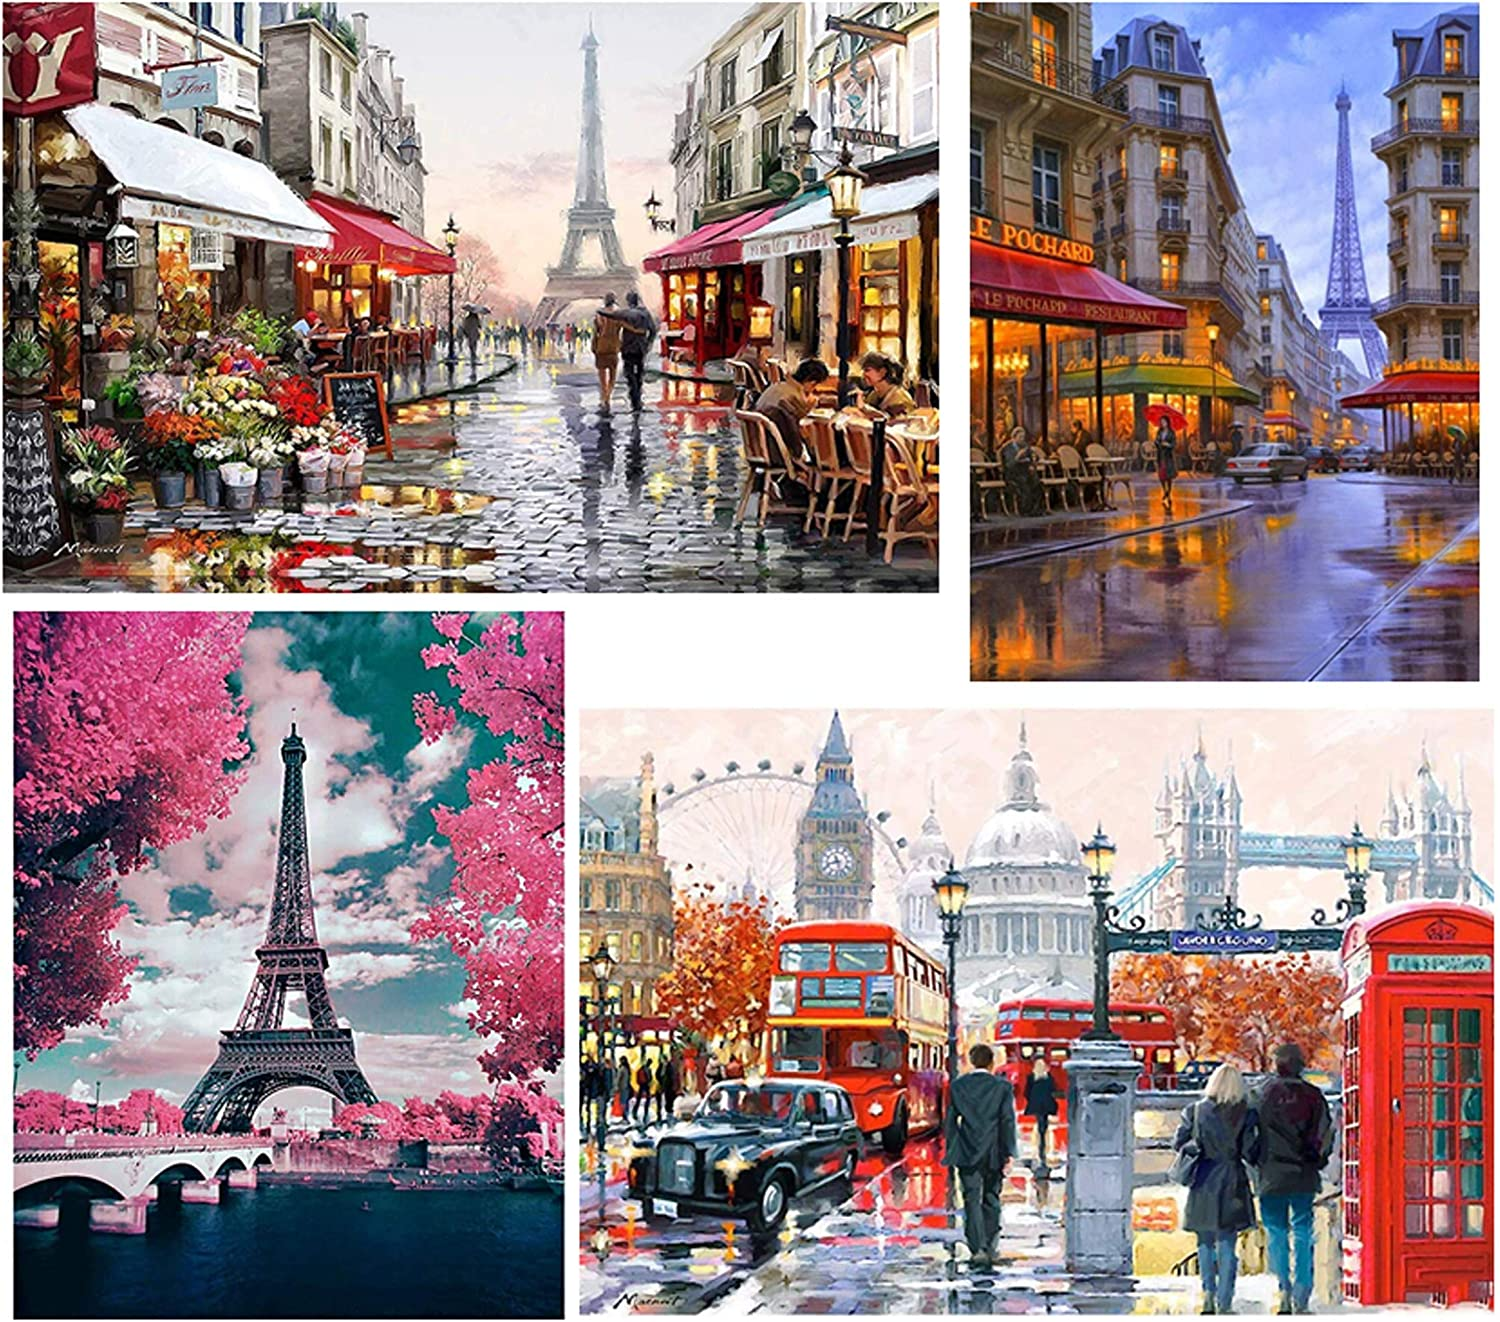 Pink Paris 5D Diamond Painting Kit for Adults and Beginners Paint with Round Diamond Beads Eiffel Tower Full Drill Canvas Supply 12/×16 DIY Diamond Art Picture Handicraft for Wall Decoration